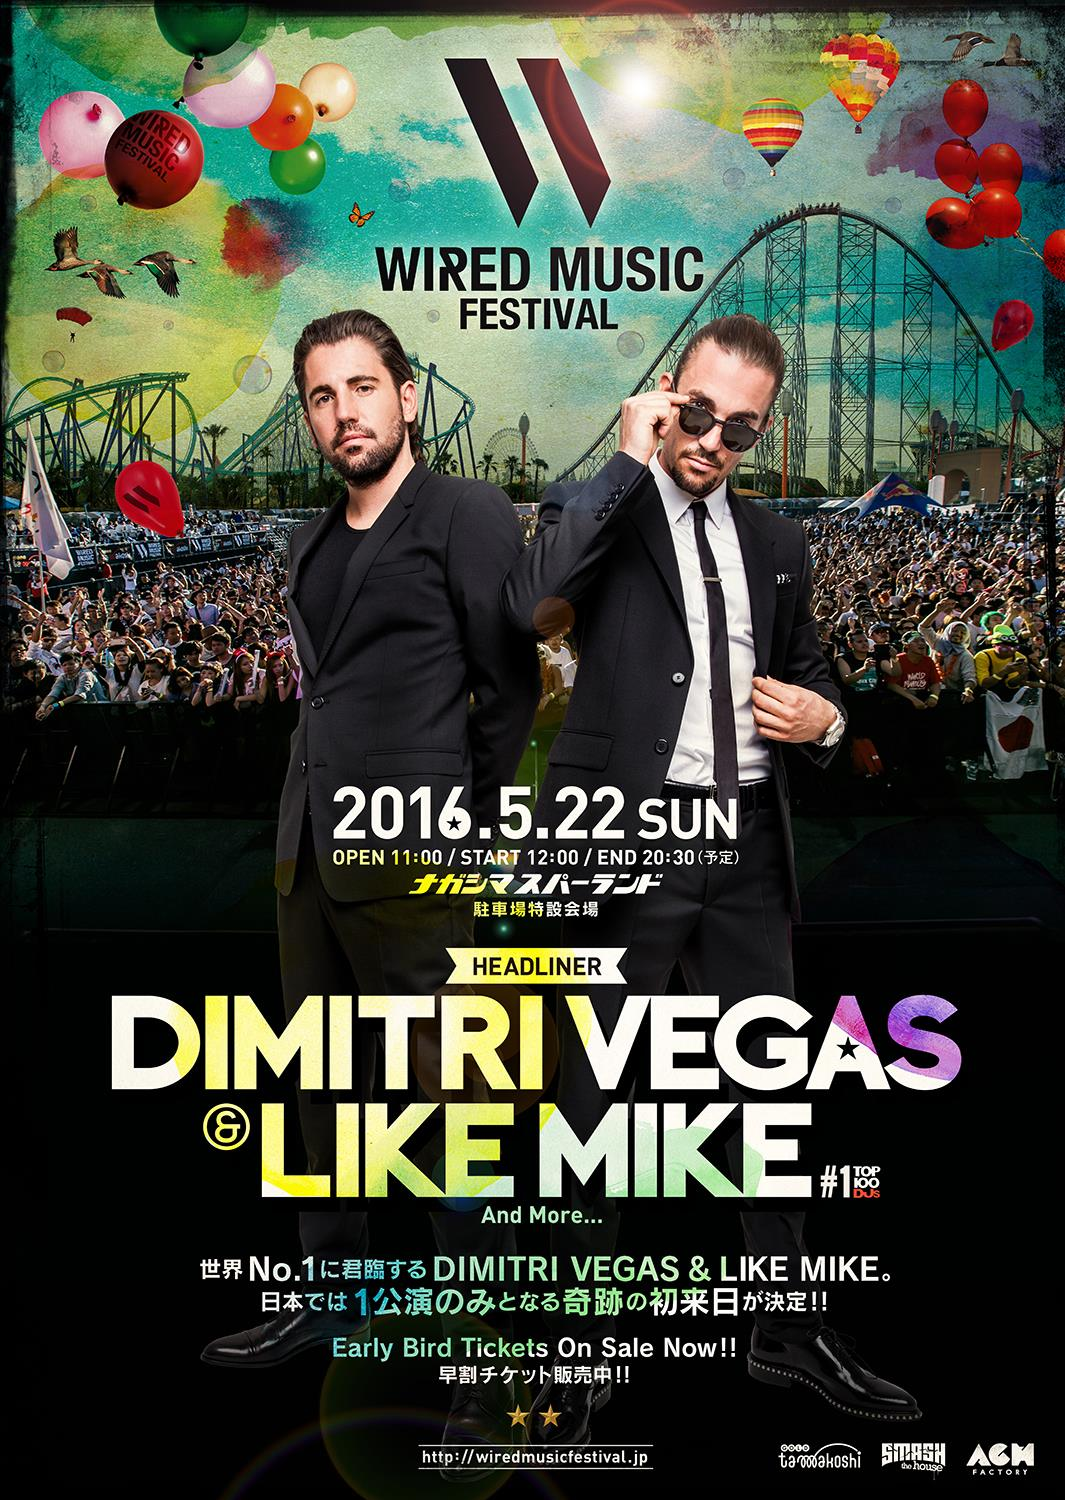 DVLM WIRED MUSIC FESTIVAL 2016